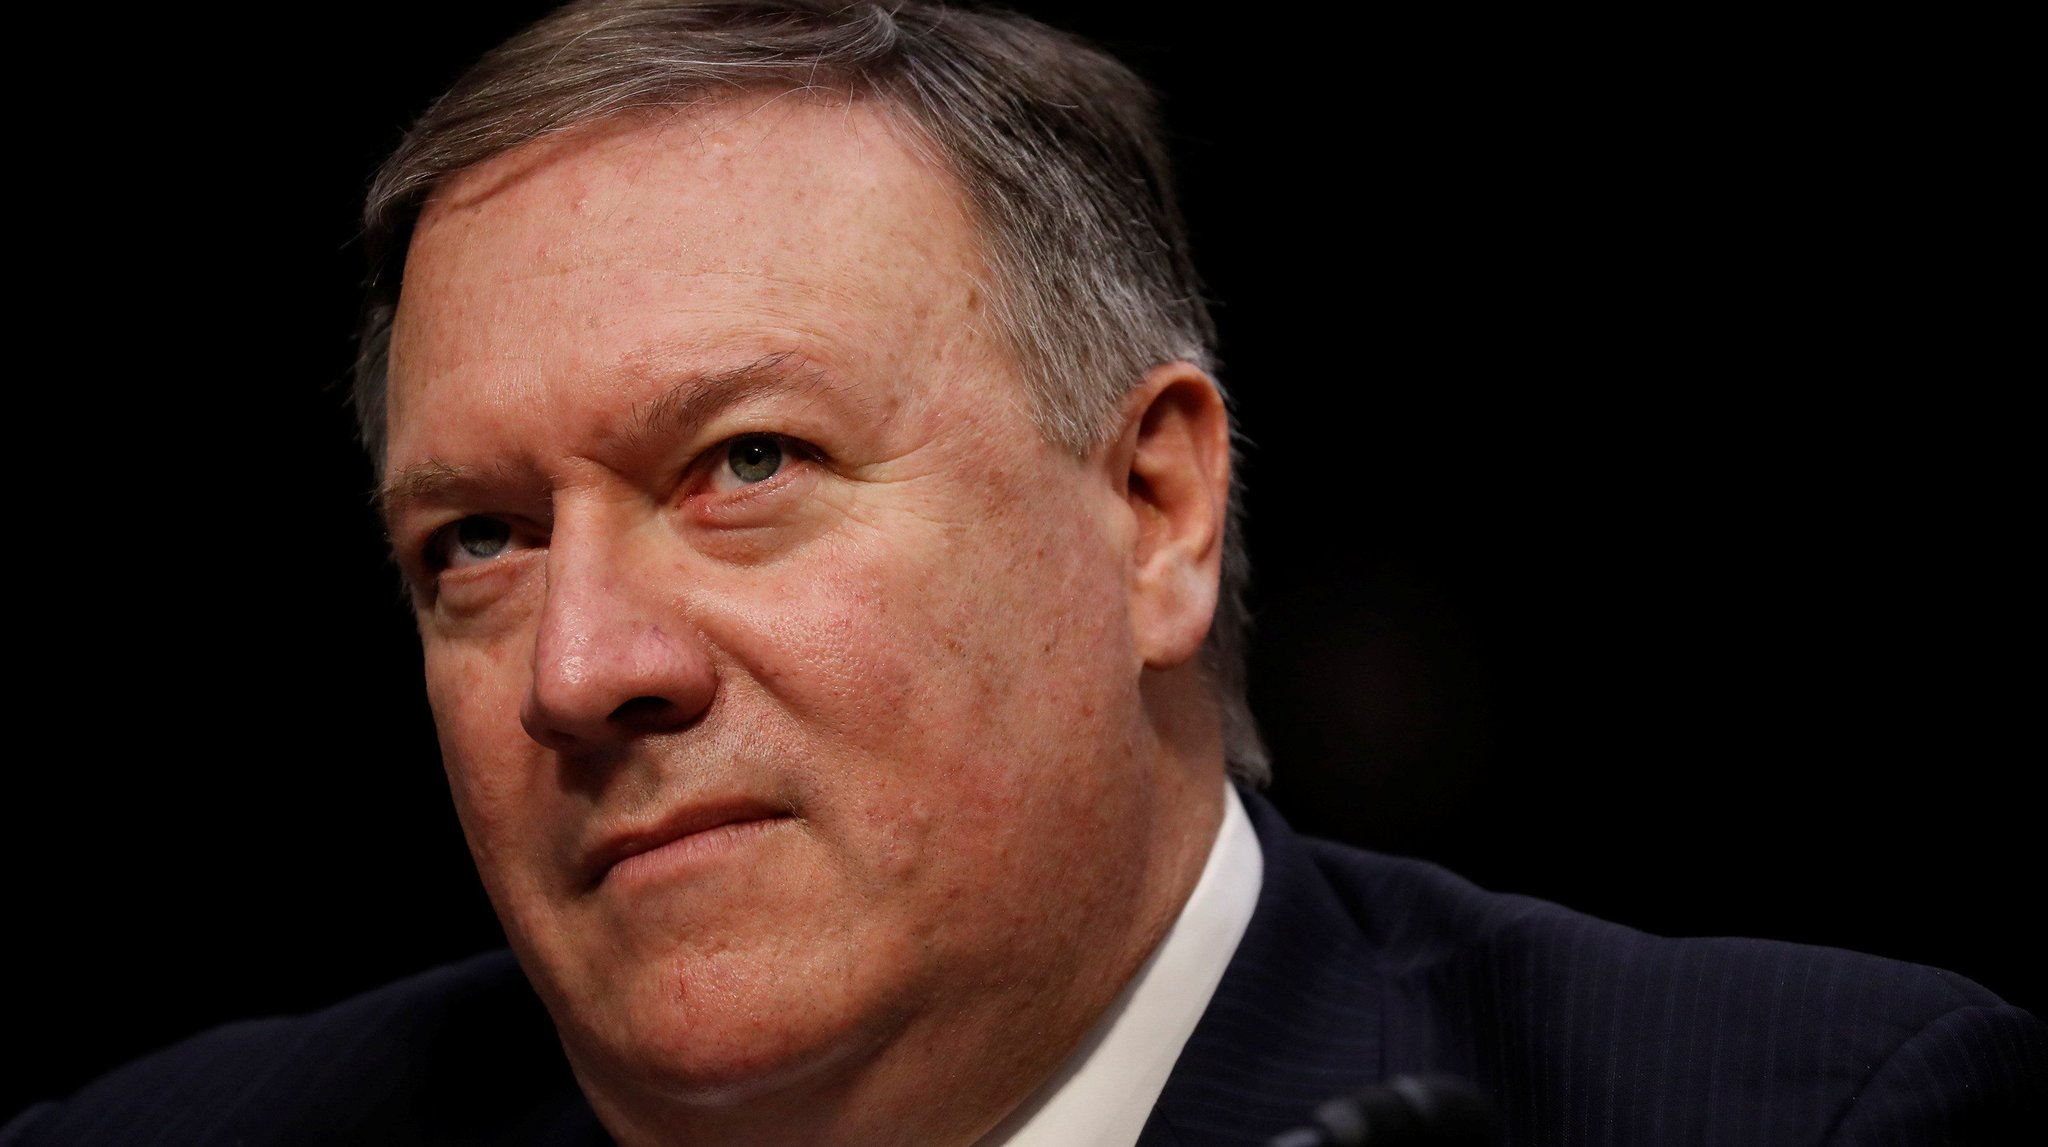 Secretary of state nominee Mike Pompeo says he continues to oppose gay marriage https://t.co/kCBCspqRMS https://t.co/iKB23qSEpc